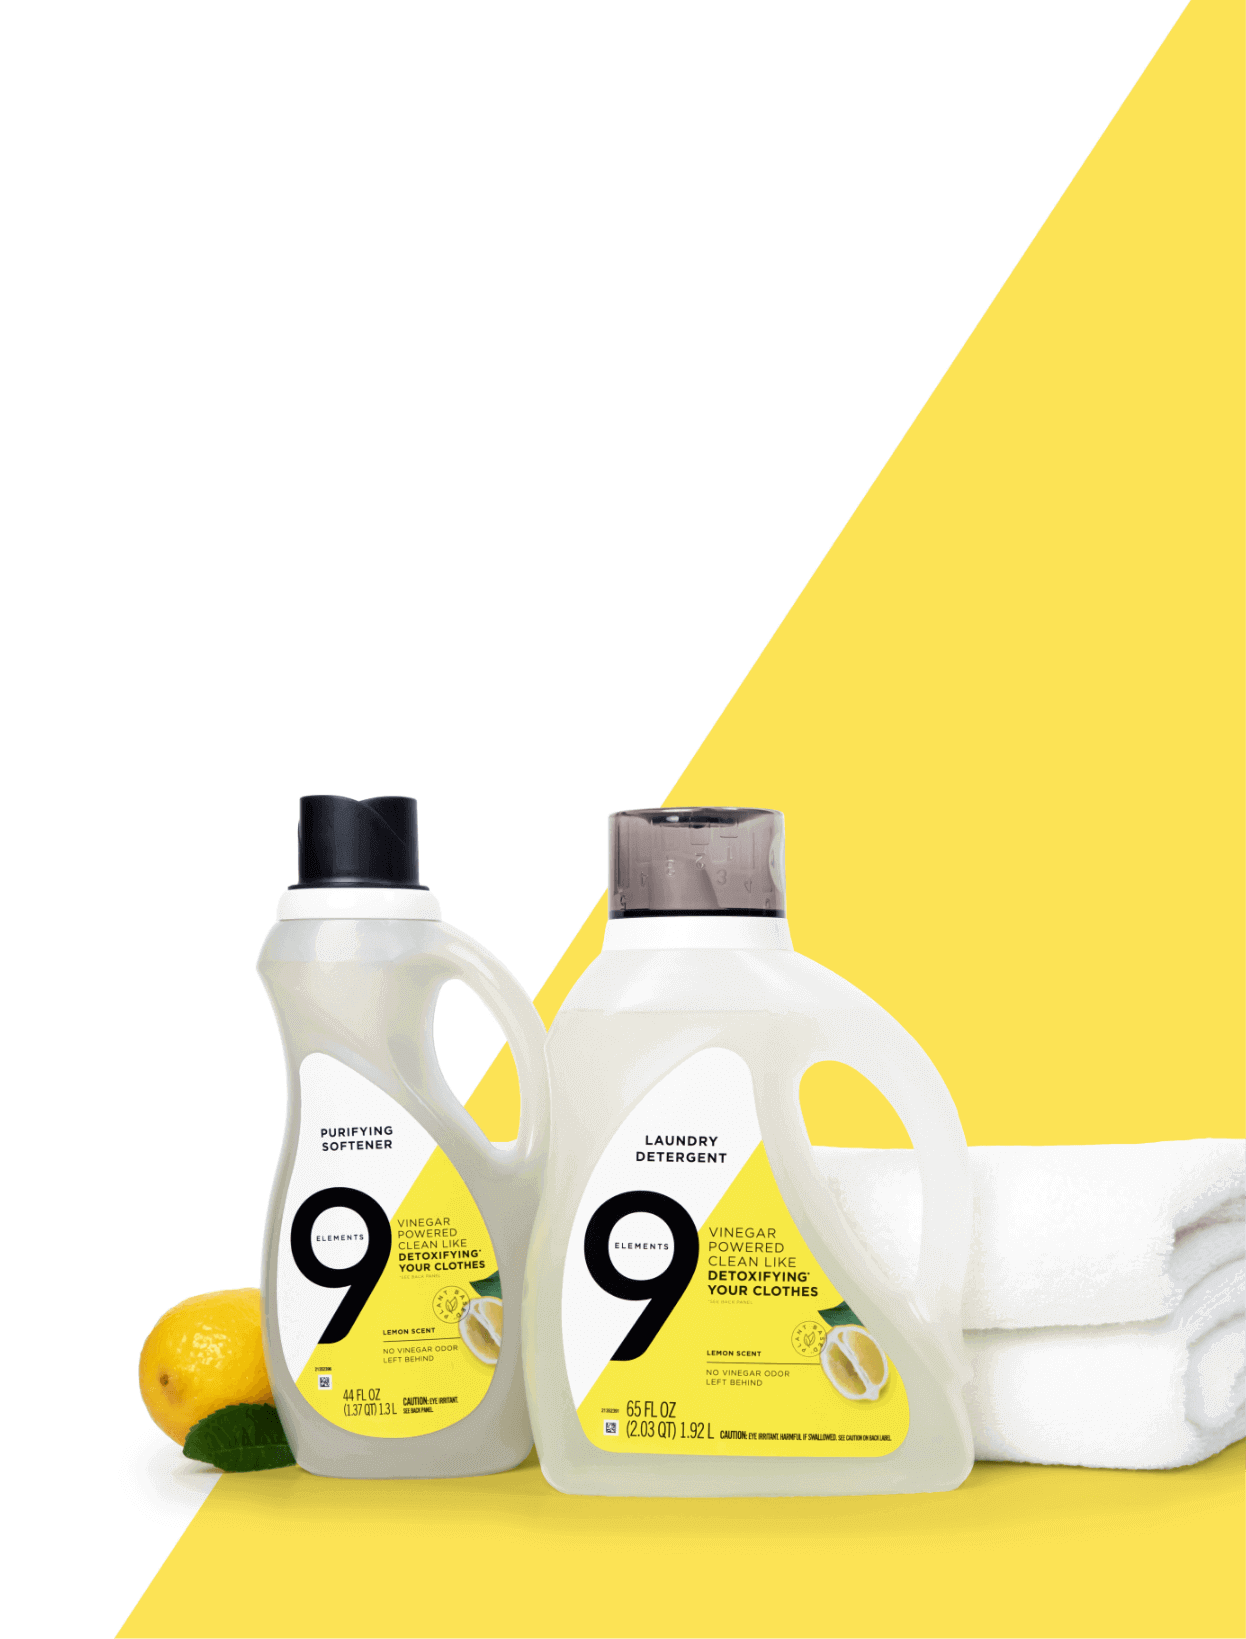 Lemons, Nine Elements Purifying Softener, Laundry Detergent and bright white towels.